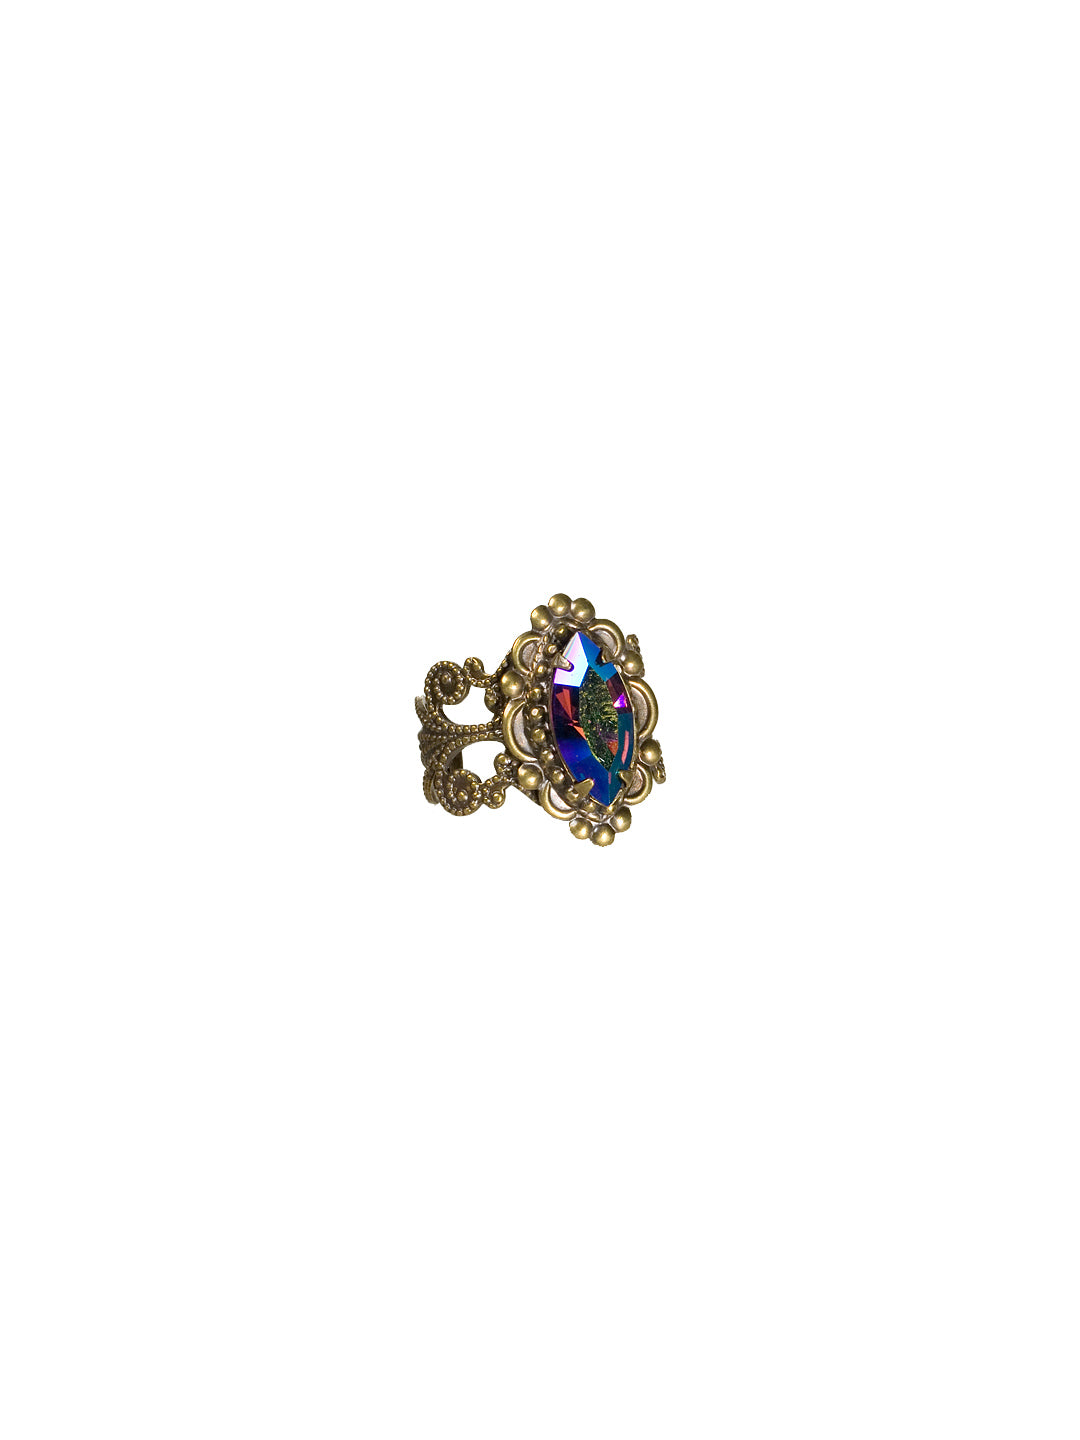 Antique Inspired Marquis Cocktail Ring - RBW10AGVO